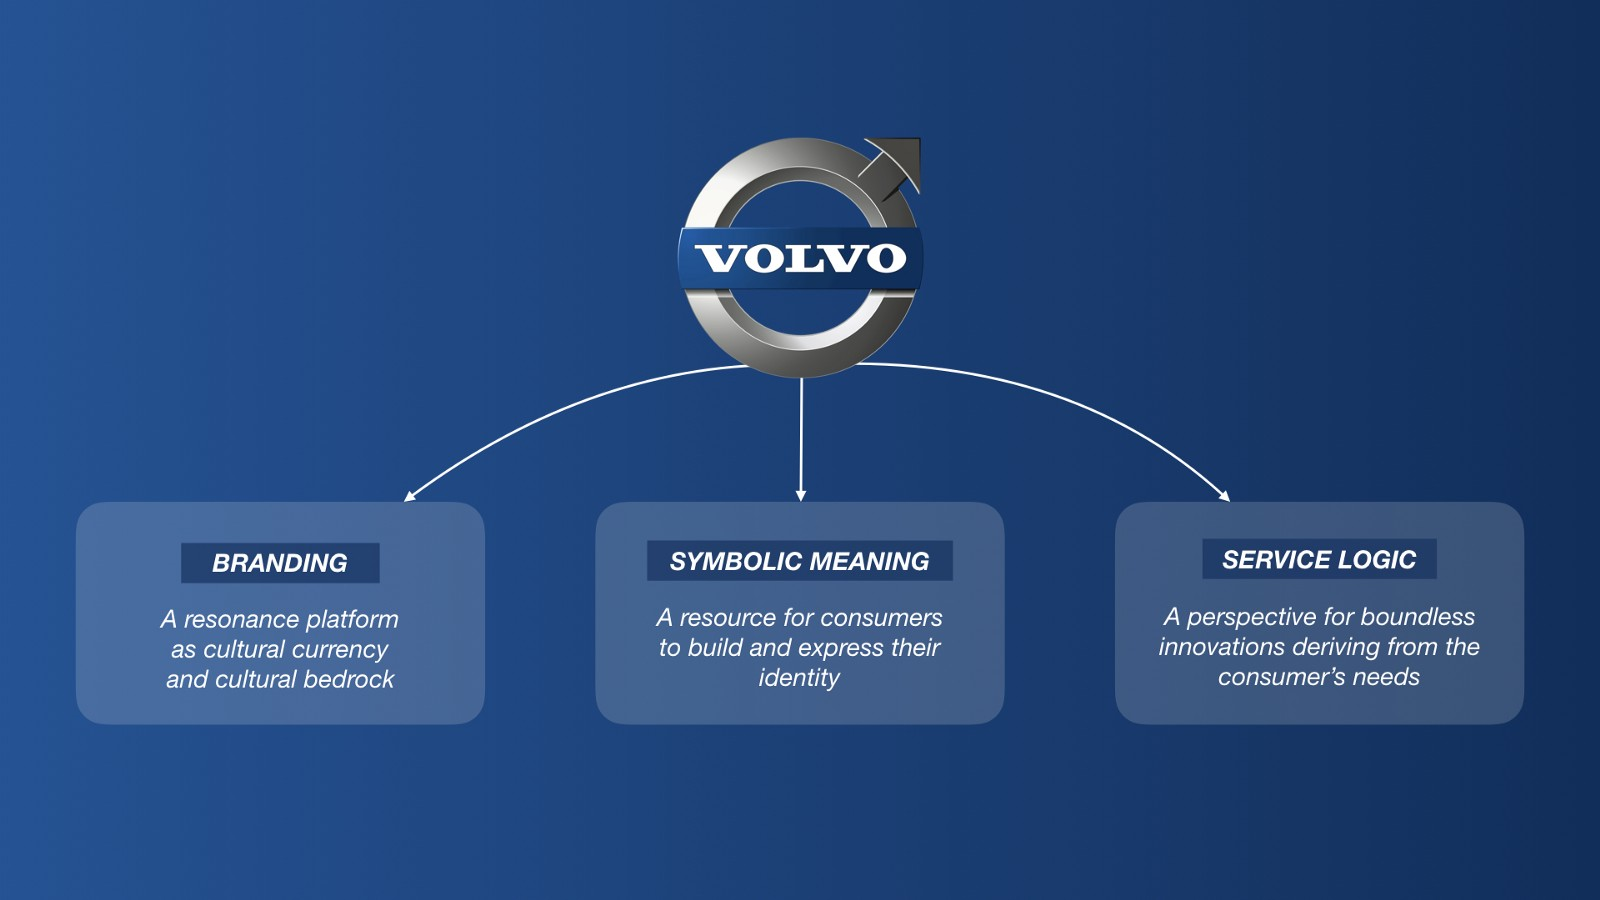 3 Insights The New Volvo Ad Taught Me About Marketing